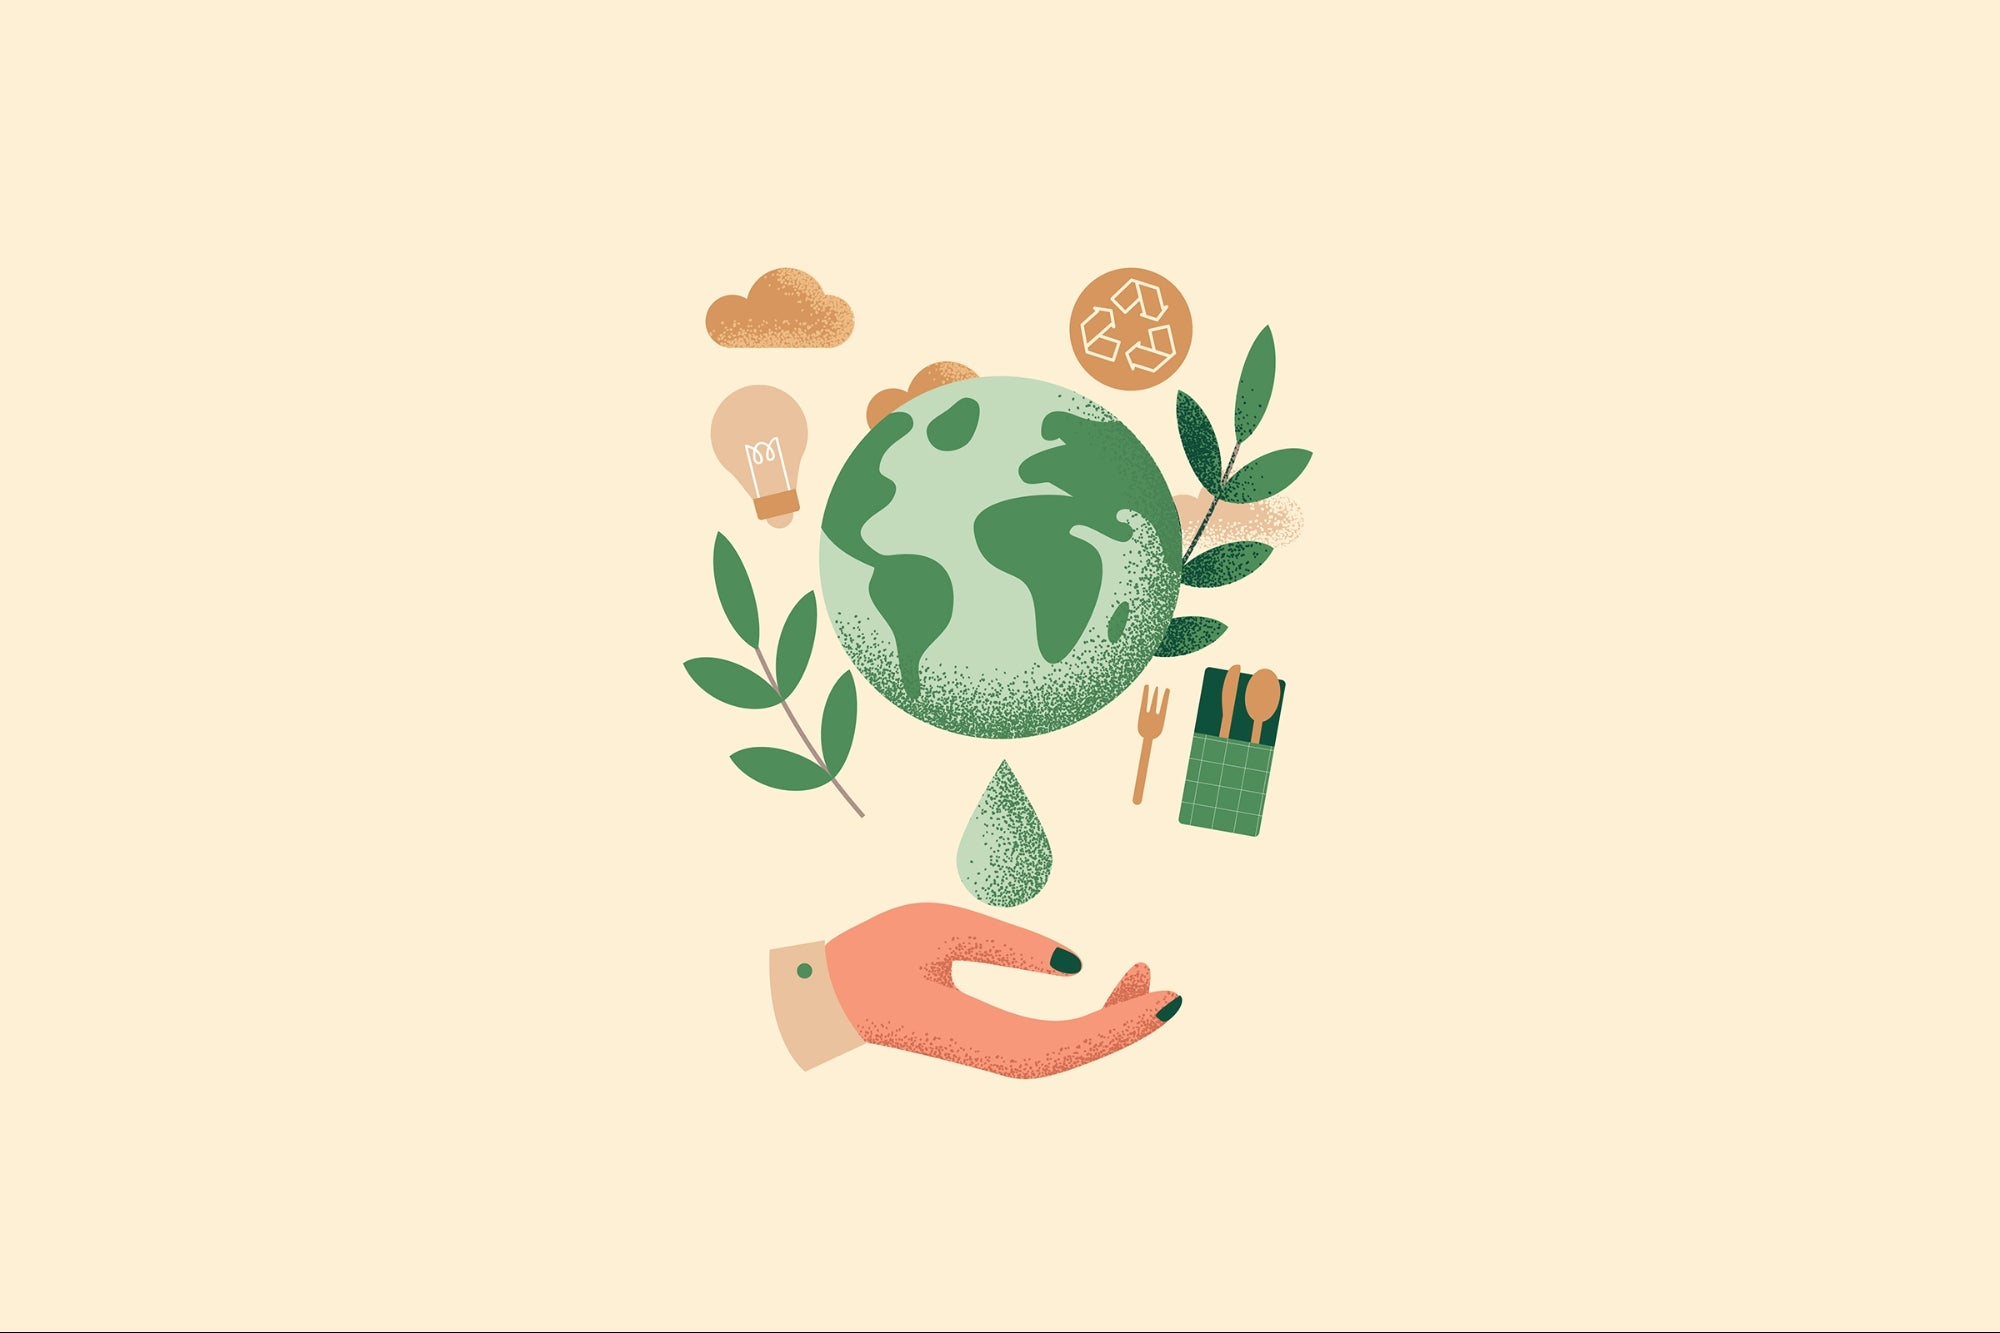 4 Ways to Avoid Greenwashing as a Sustainably Minded Brand